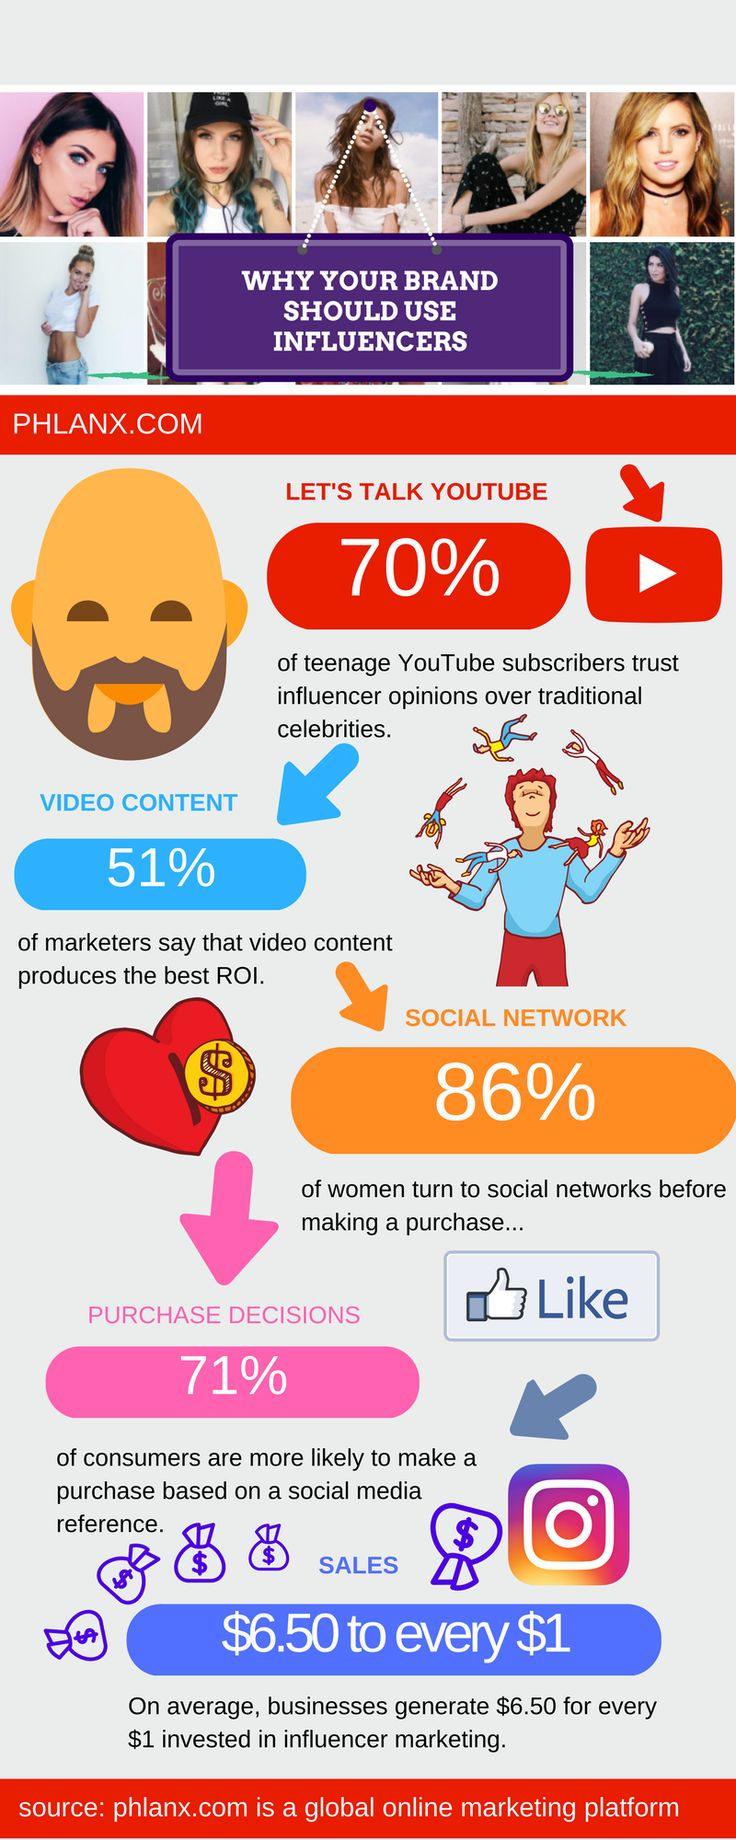 Interesting stats on why social influencers elevate brands! Phlanx.com